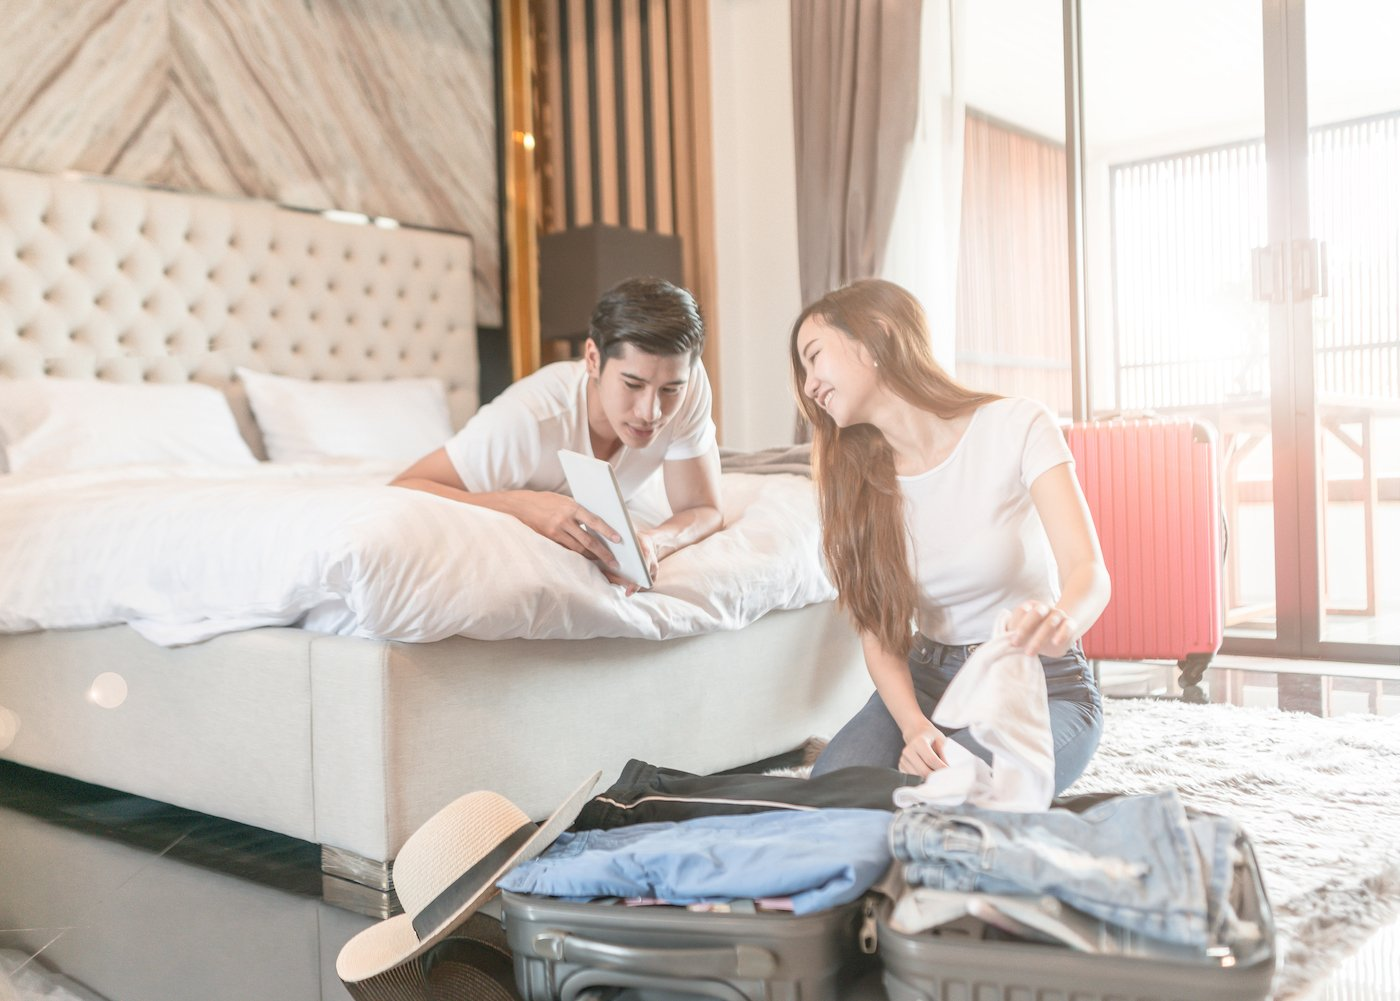 couples can consider staycations as one of the affordable living arrangements